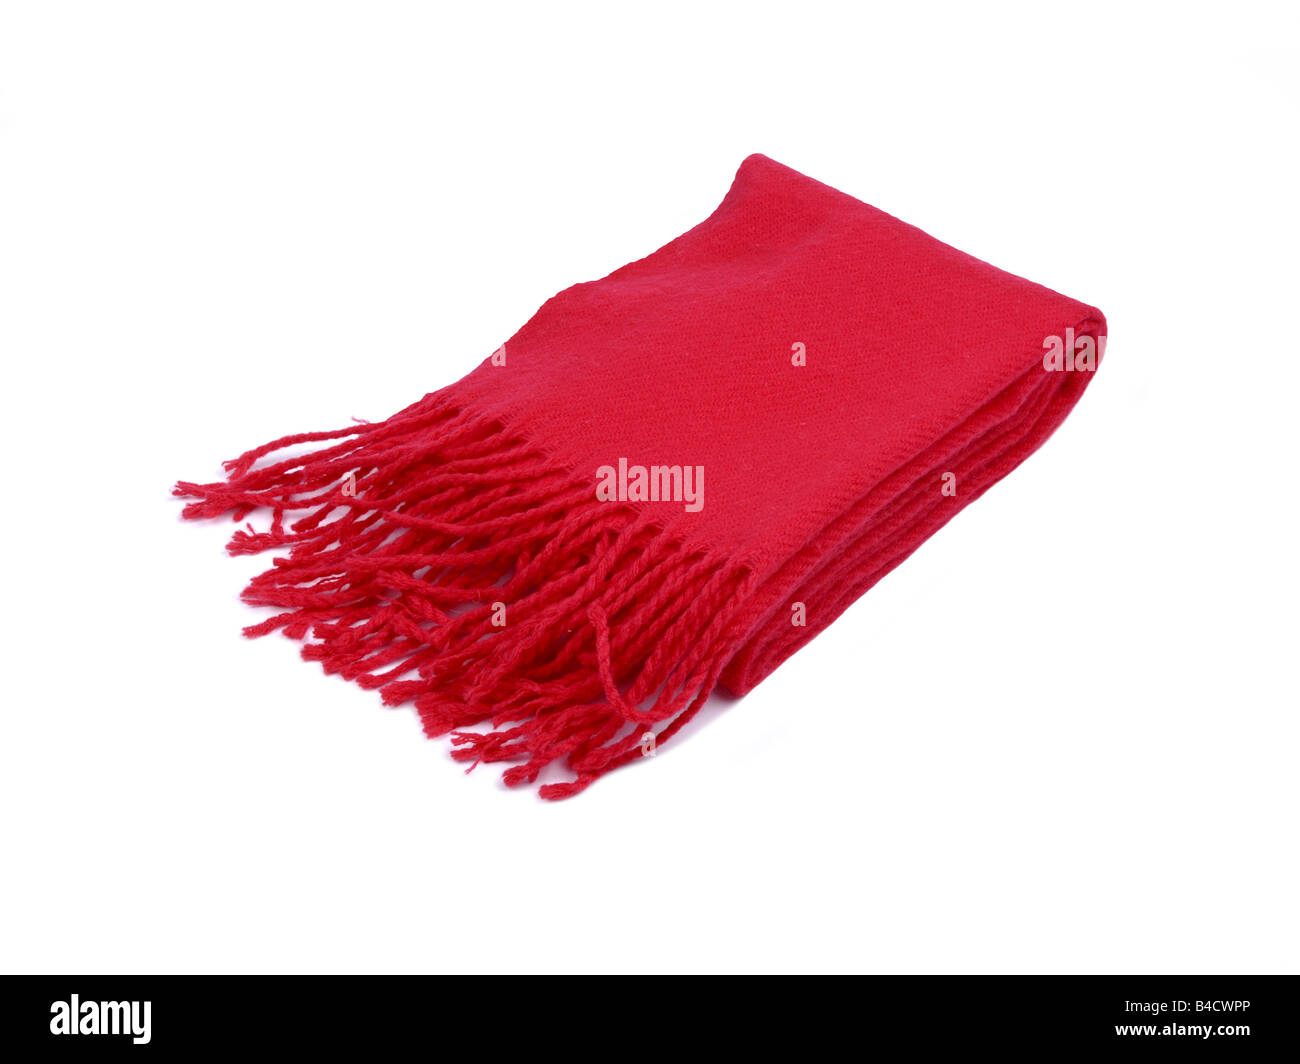 Red Wool winter scarf - Stock Image